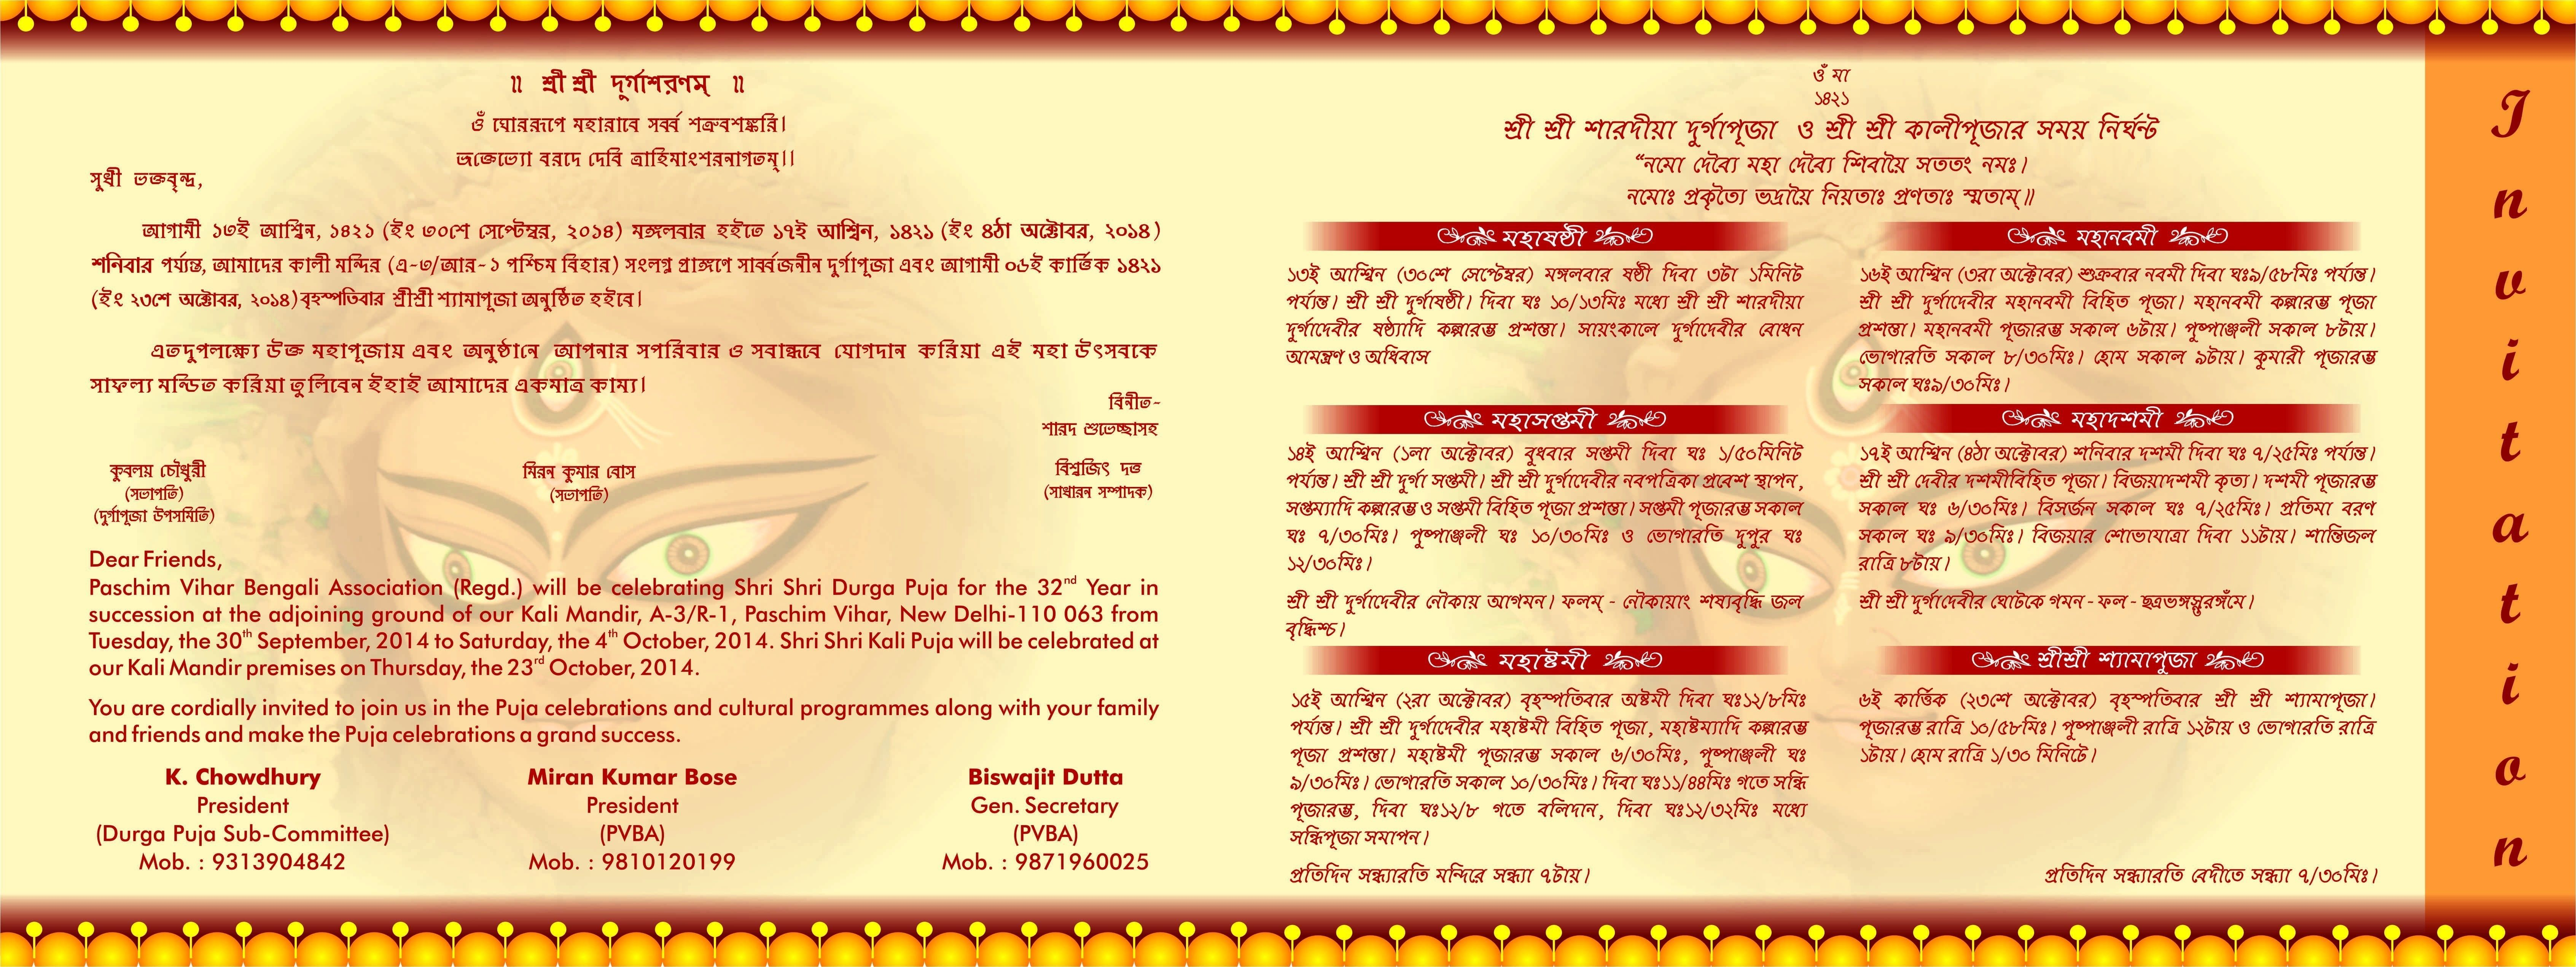 Invitation Letter For Opening Ceremony Of Durga Puja